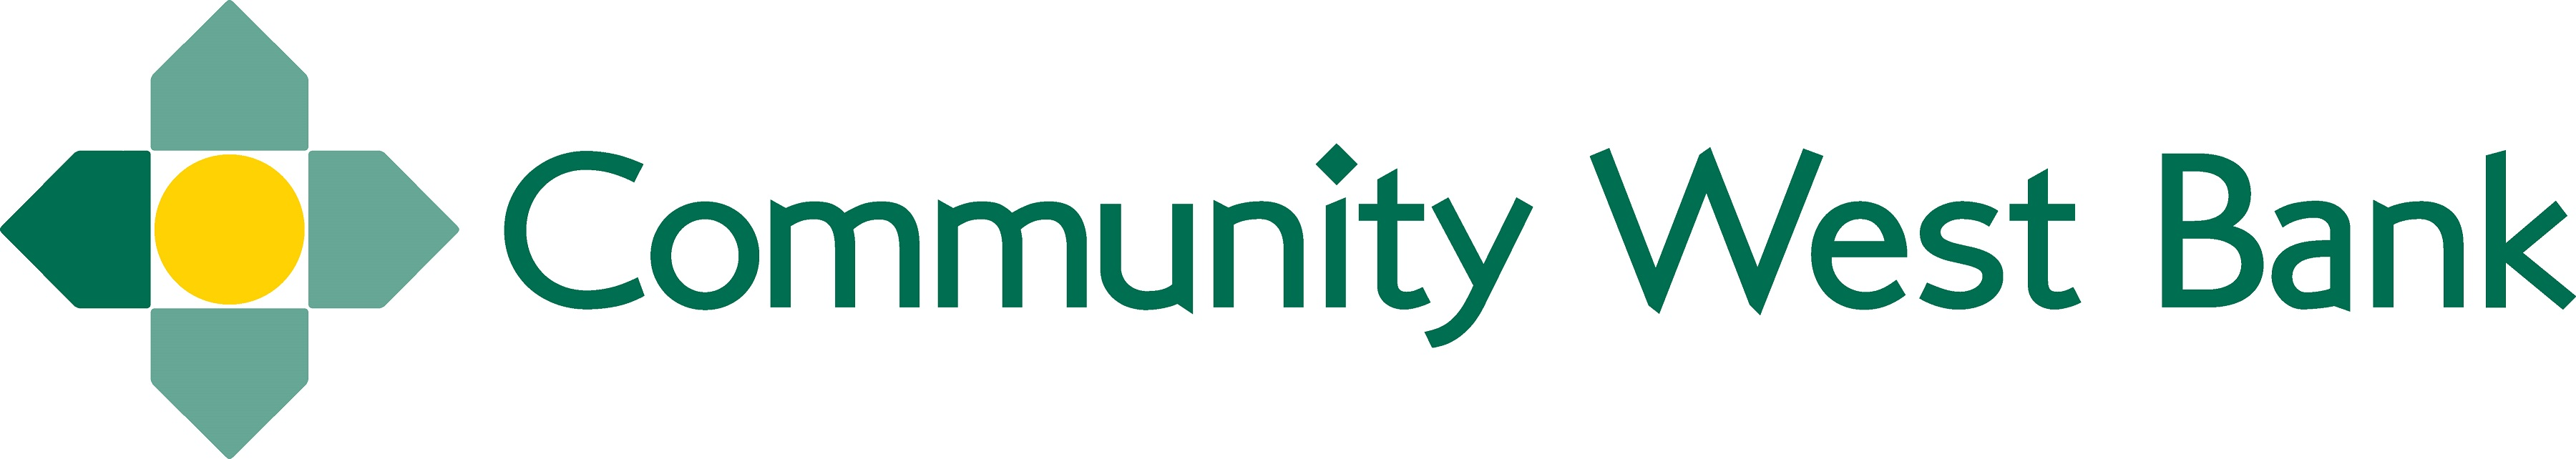 Community West Bank Logo